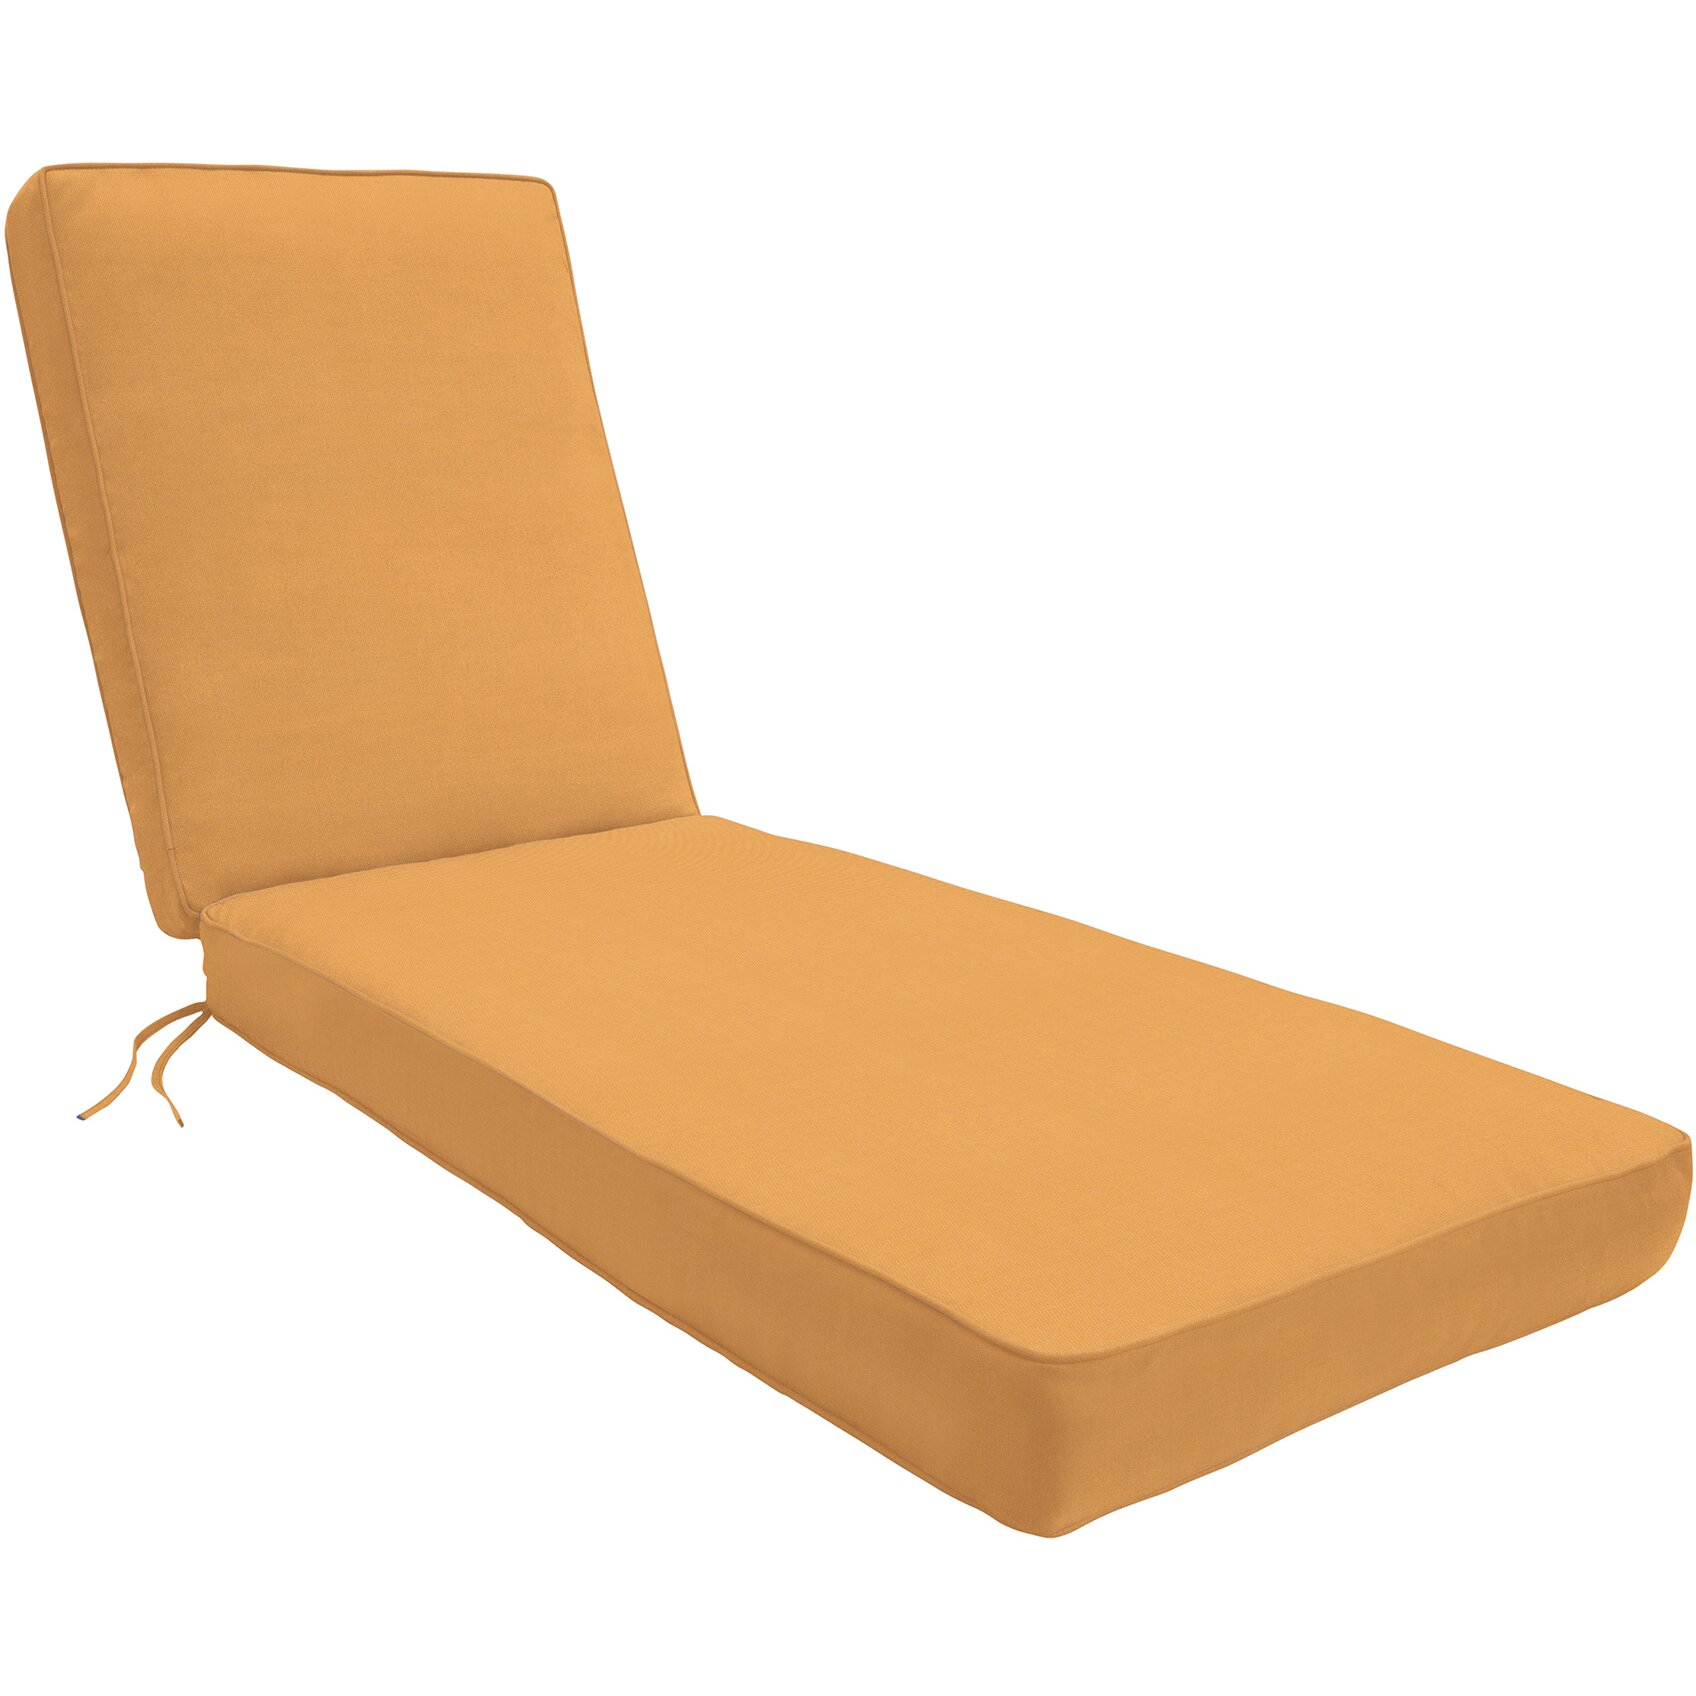 Wayfair custom outdoor cushions outdoor sunbrella chaise for Chaise longue cushion